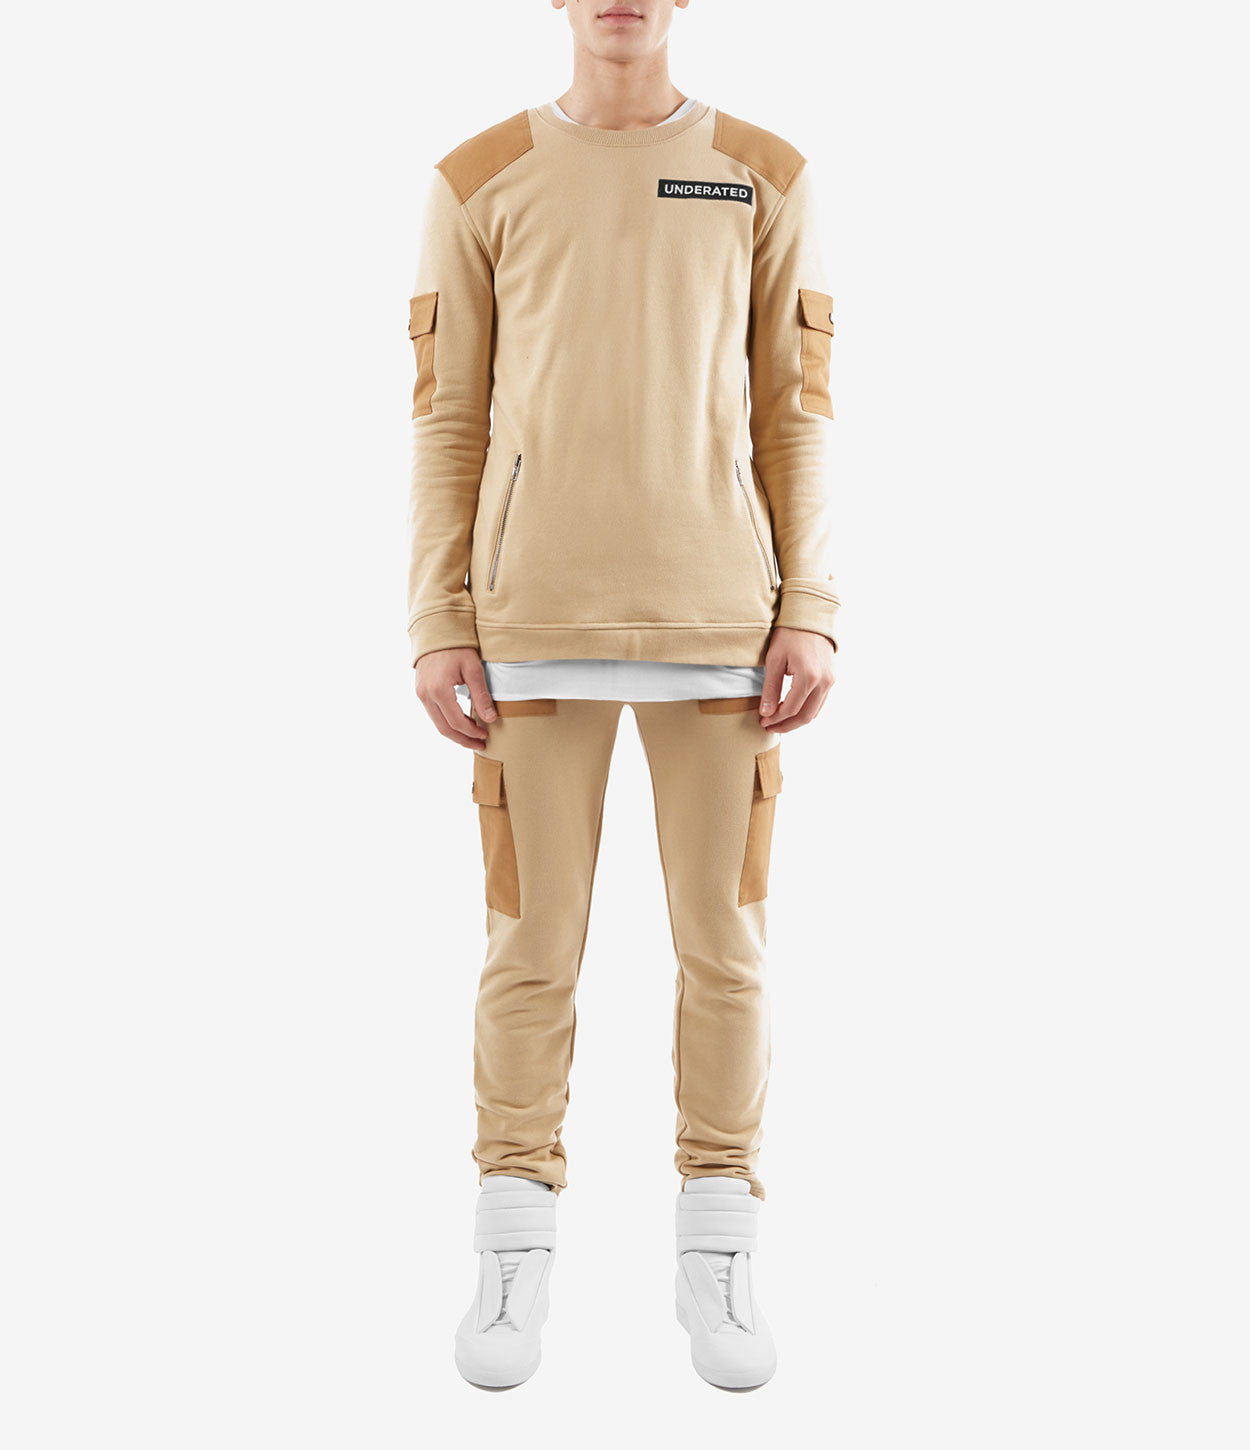 SW376 Utility Cargo Sweatshirt - Beige - underated london - underatedco - 2